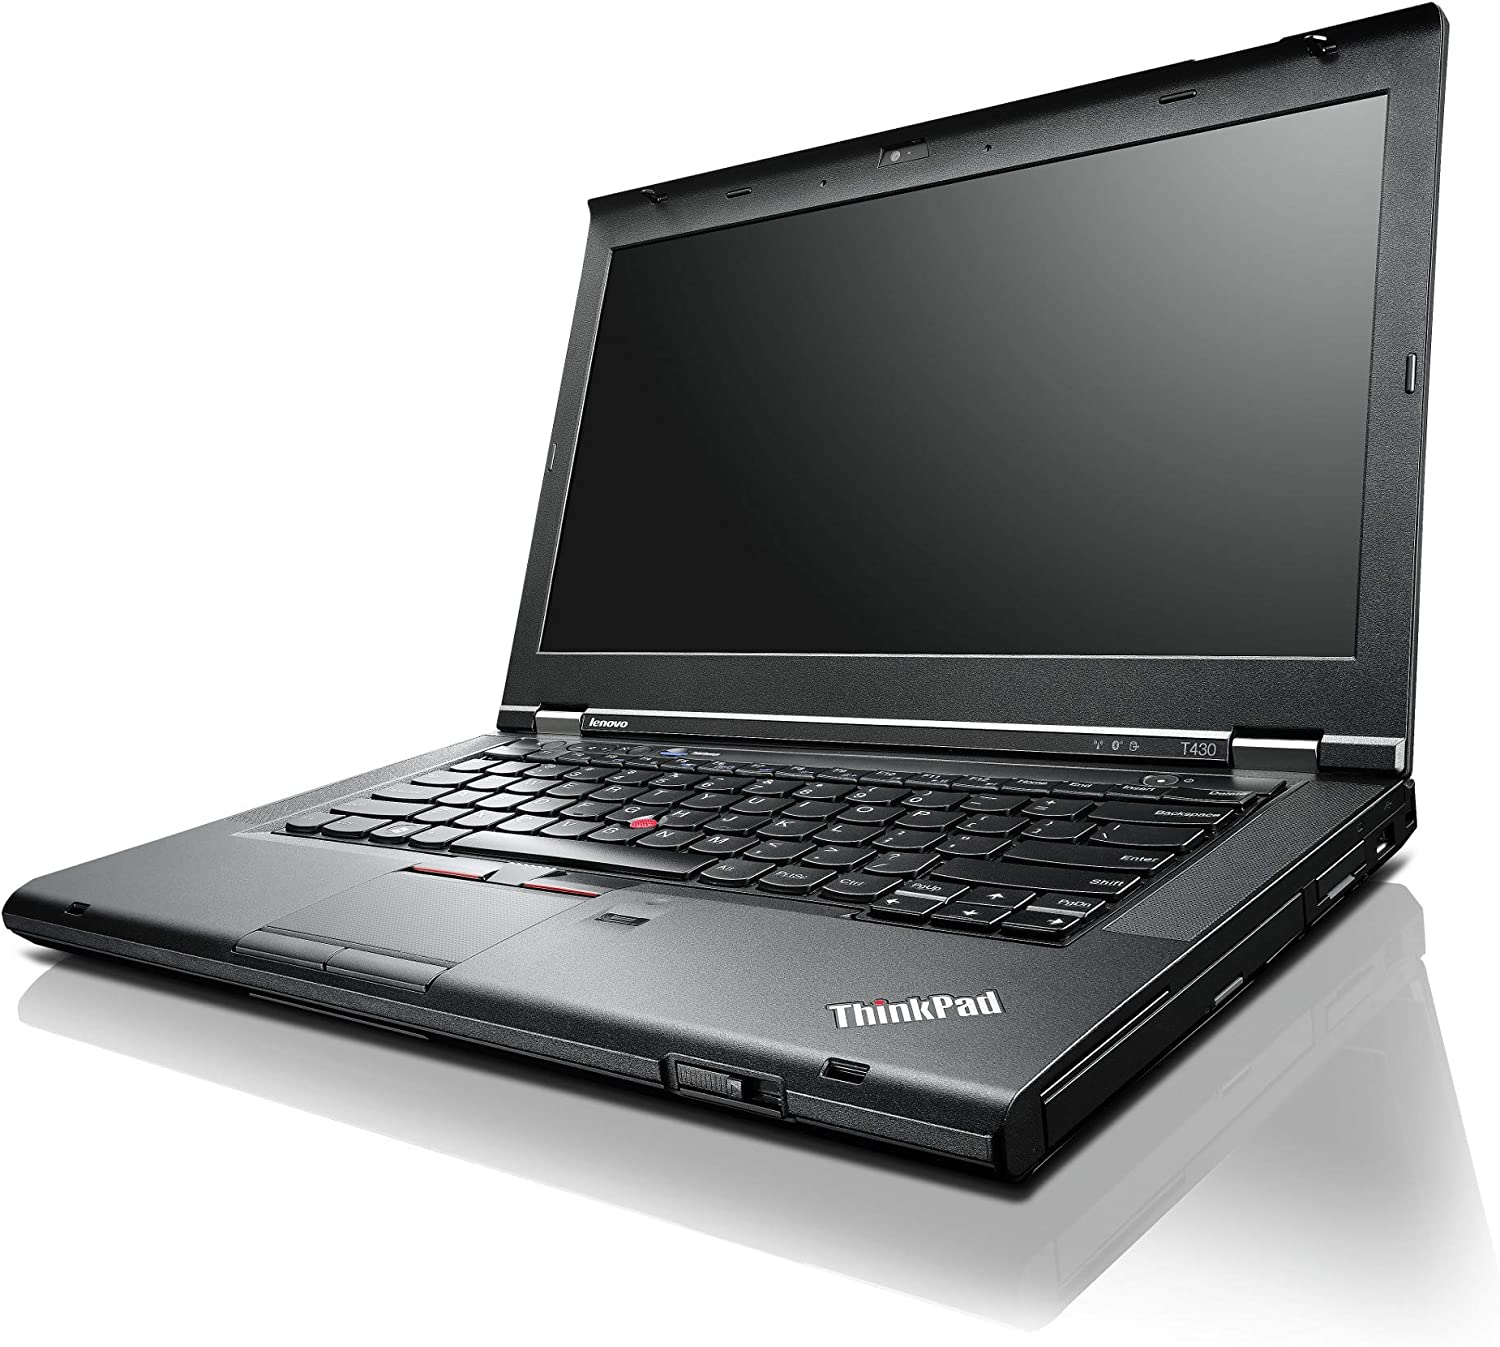 Lenovo Thinkpad T430 Built Business Laptop Computer (Intel Dual Core i5 Up to 3.3 Ghz Processor, 8GB Memory, 320GB HDD, Webcam, DVD, Windows 10 Professional) (Renewed)